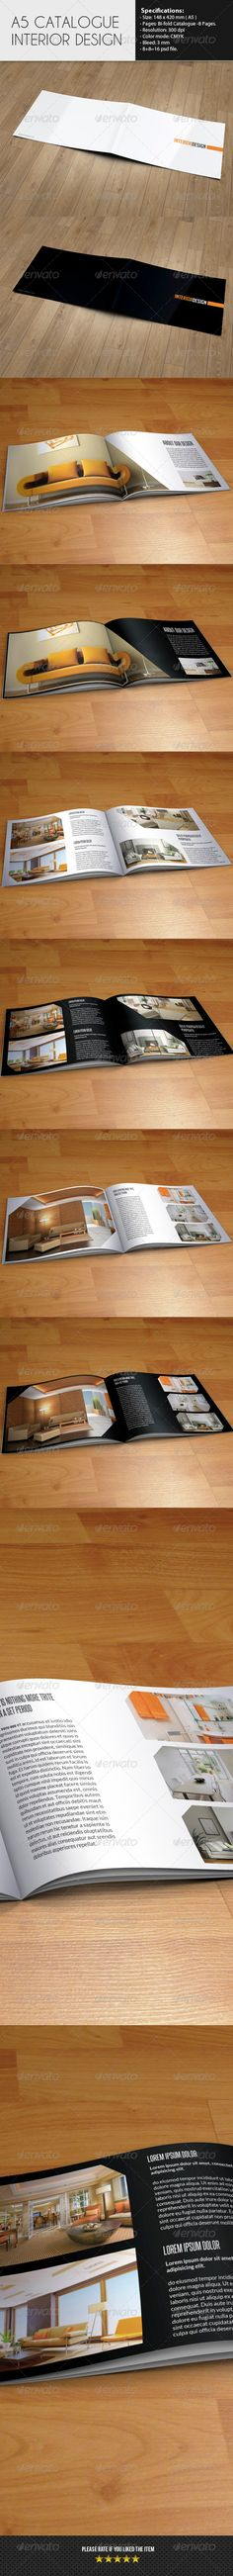 Interior Catalogue